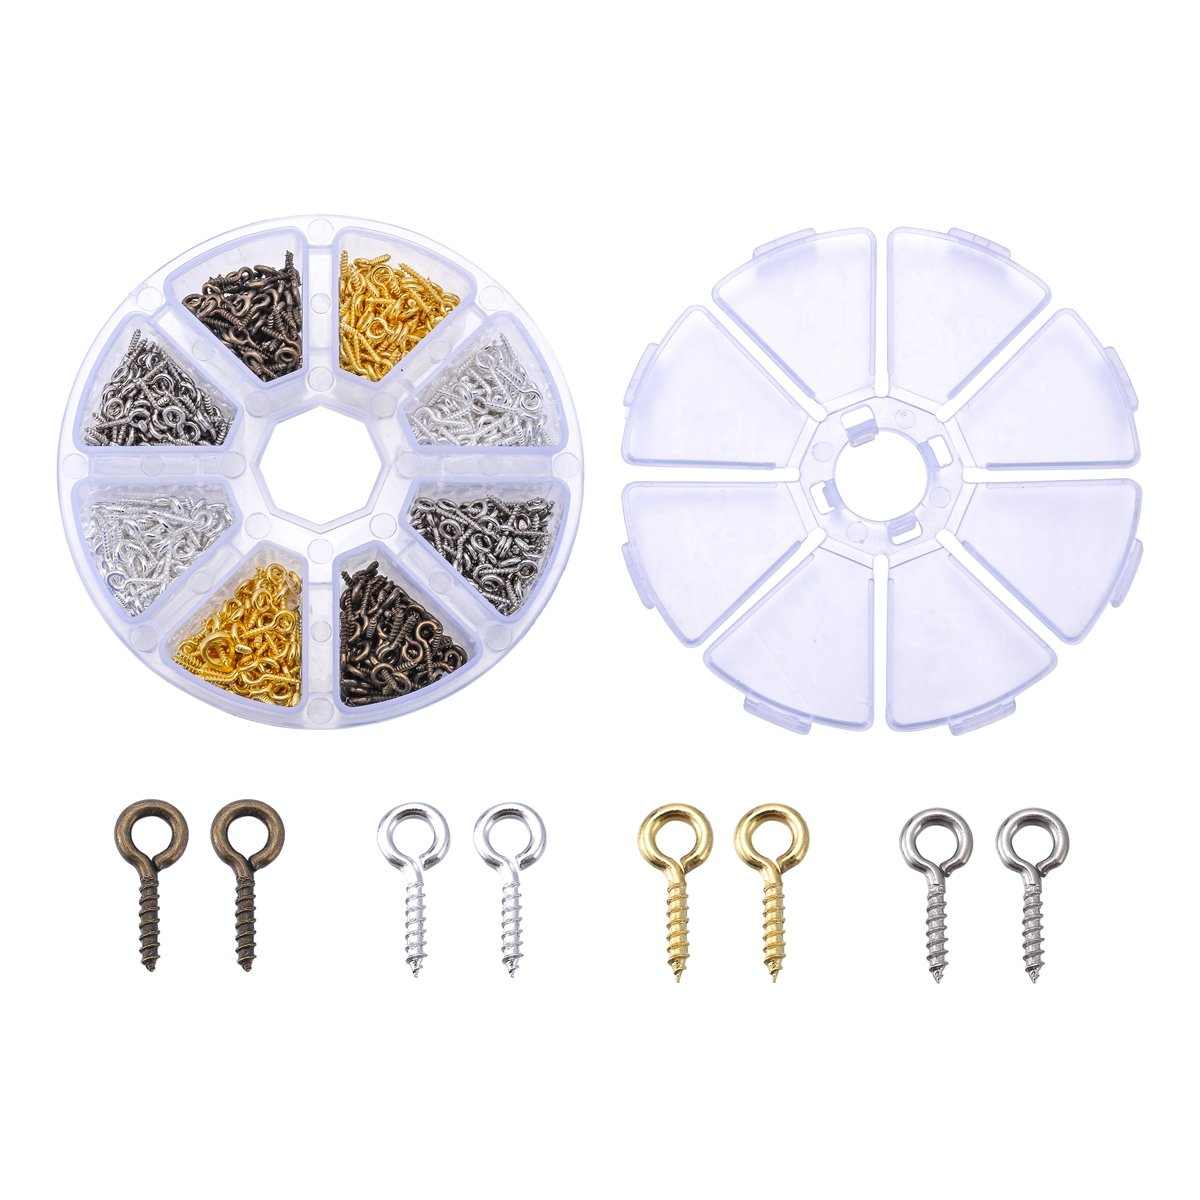 1Box 4 Colors Alloy Screw Eye Pin Bail Peg for Clay Jewelry 4mmx10mm Pack of 800pcs ValyriaUK SGto-B298942